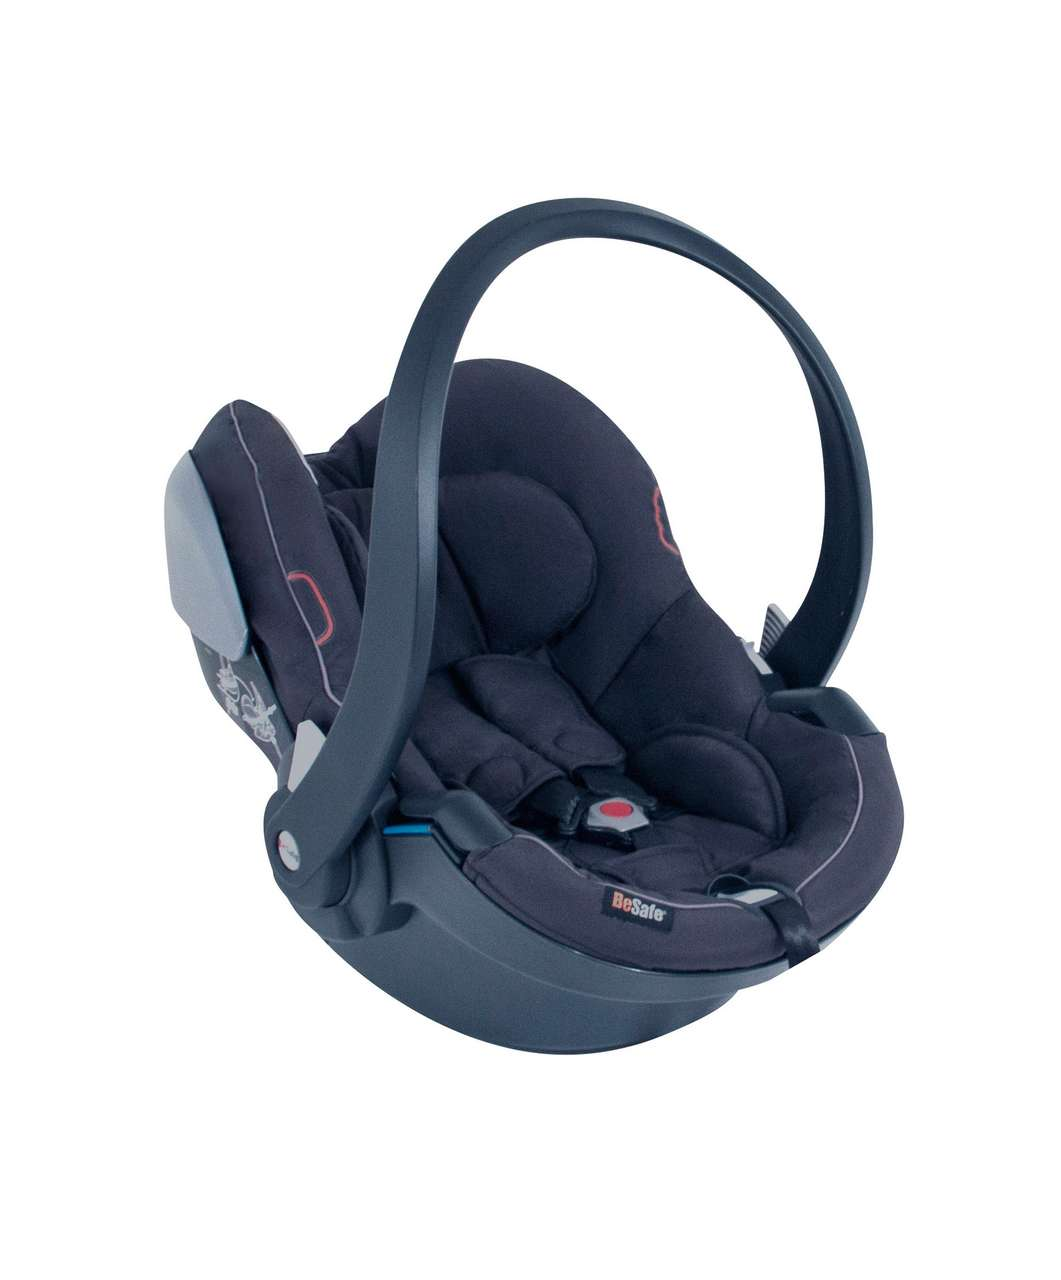 Car Seat, Baby Car Seats Are Safe